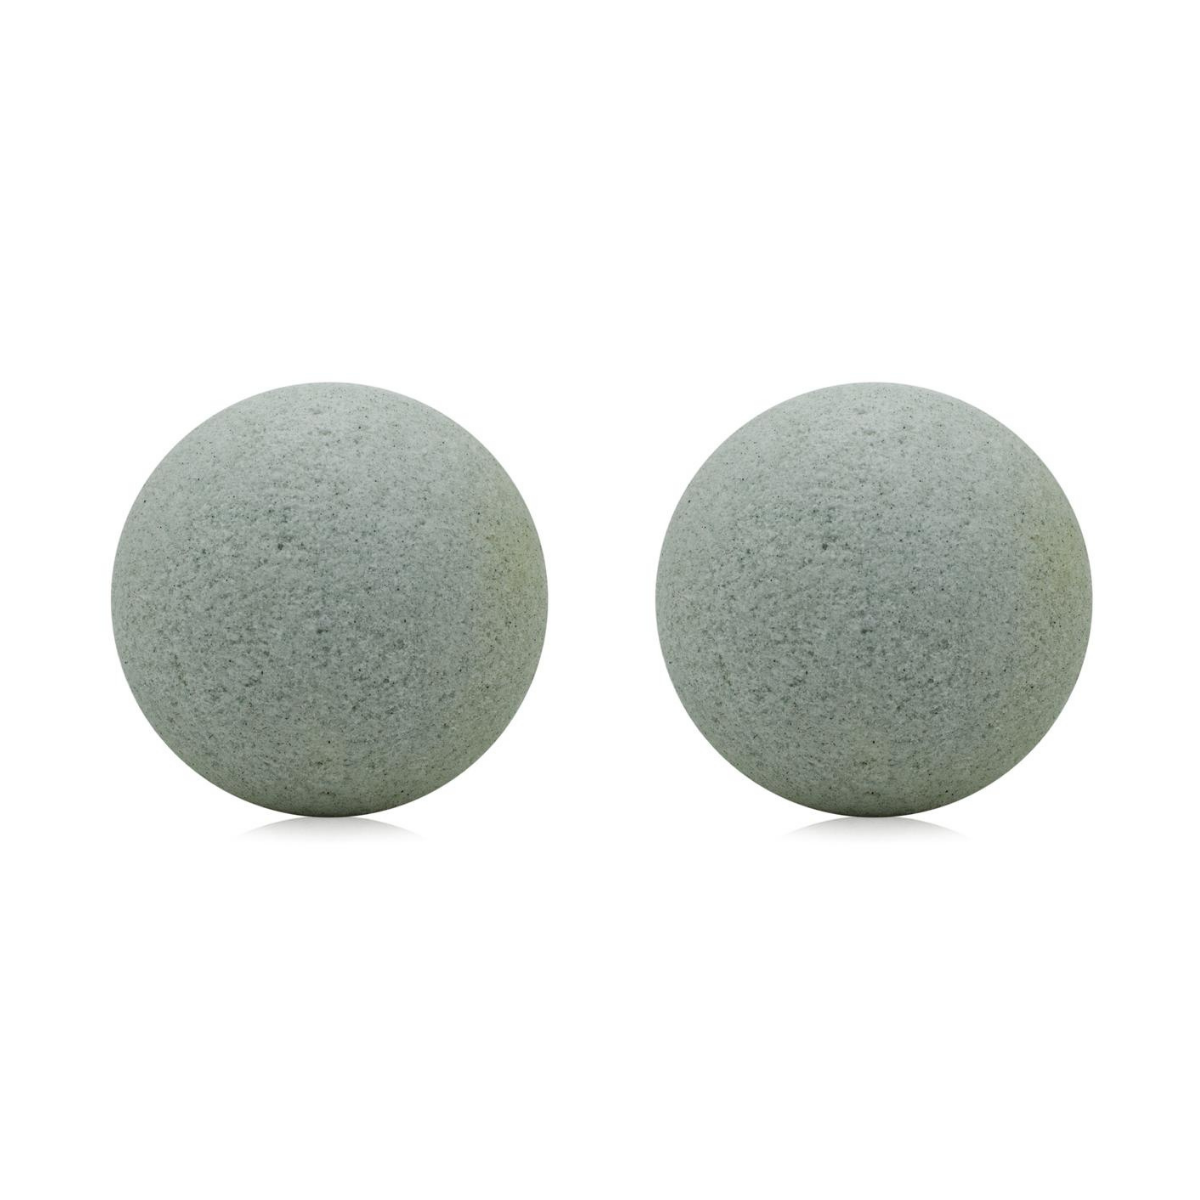 Peppermint Tea Tree Bath Bomb - 2 Pack